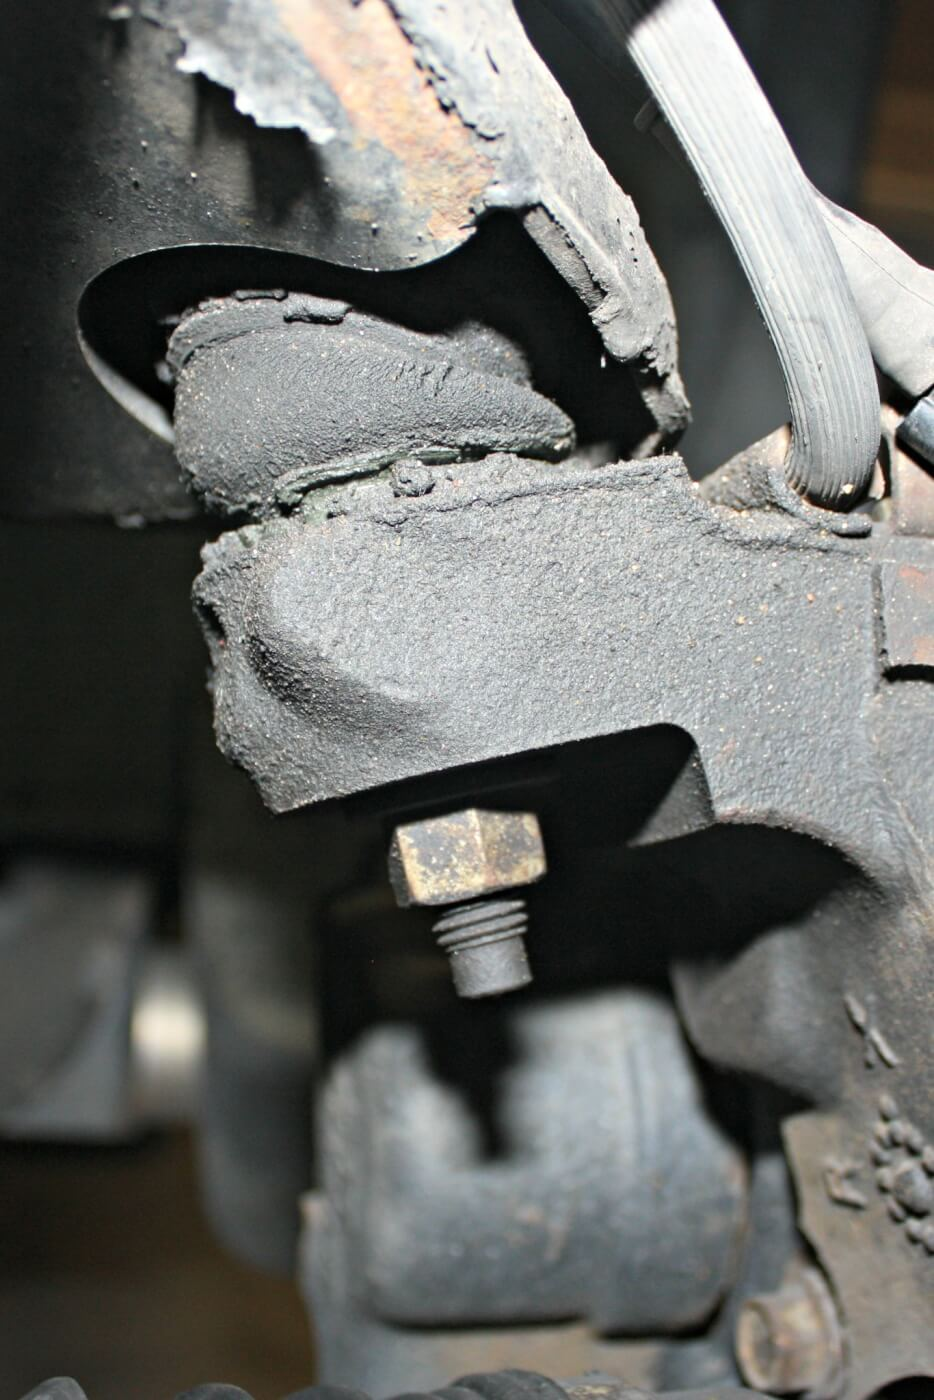 3/ 4. After 142,000 miles, the factory tie rod ends, idler arm and ball joints were starting to show signs of wear and had started to show some play. This caused the truck to wander a bit at highway speeds. While some upgrades had already been done to the front of the truck (notice the tie rod sleeves) the Ultimate Steering Package from Dmax Store includes much stronger tie rods and a straight center link and when paired with their indestructible Death Grip idler arm you'll see improved steering response and unmatched durability.